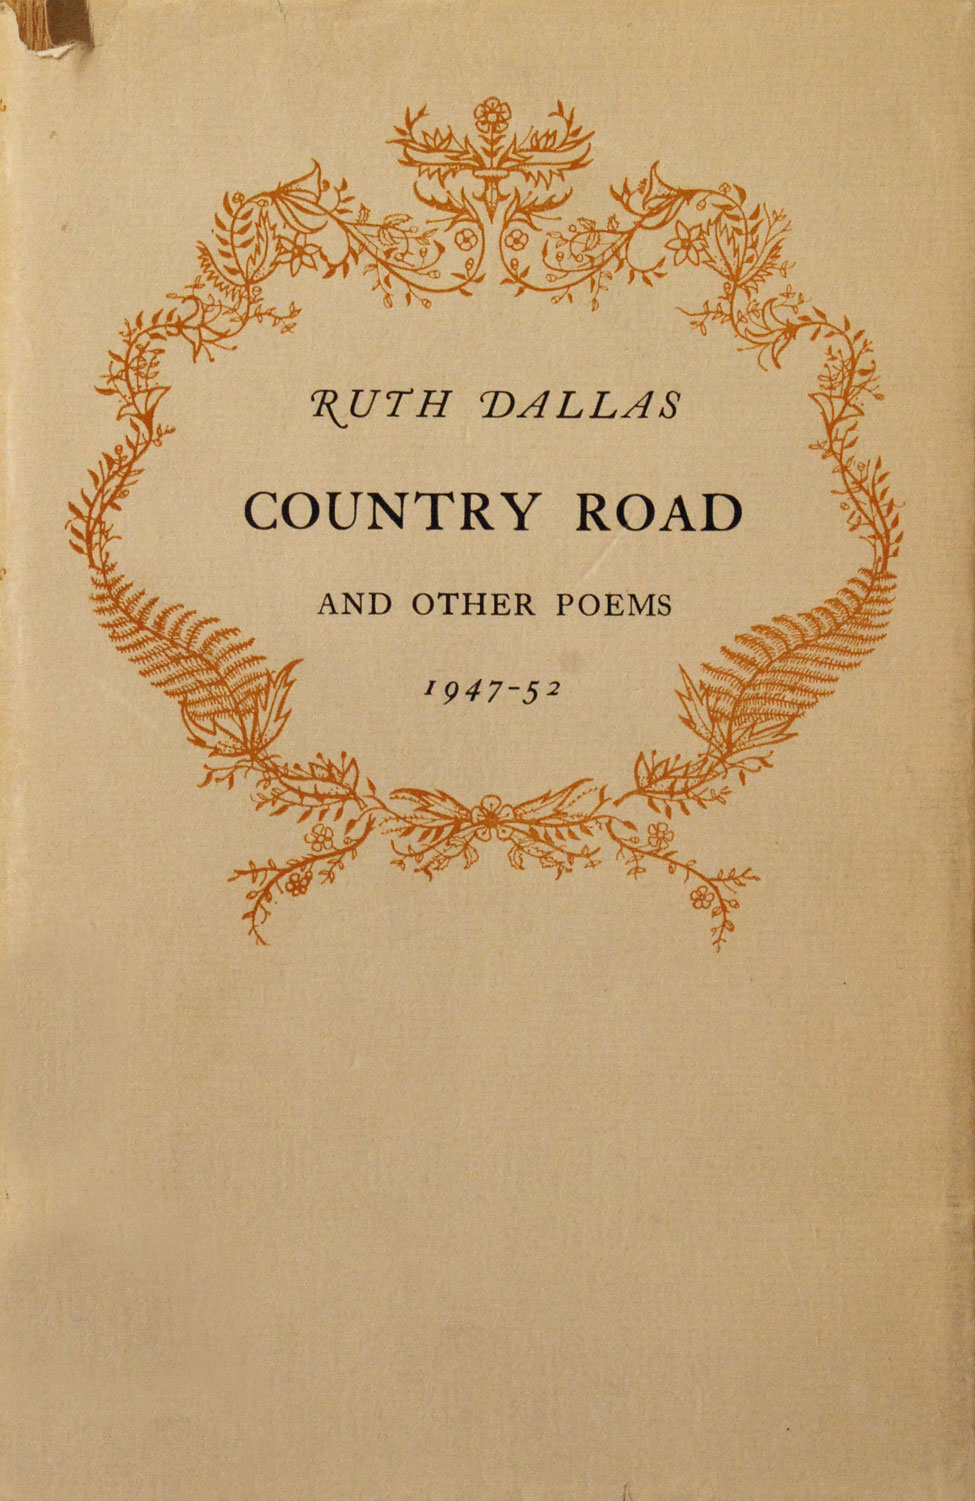 Ruth Dallas. Country Road and Other Poems, 1947–1952. <i>Christchurch: The Caxton Press, 1953.</i>